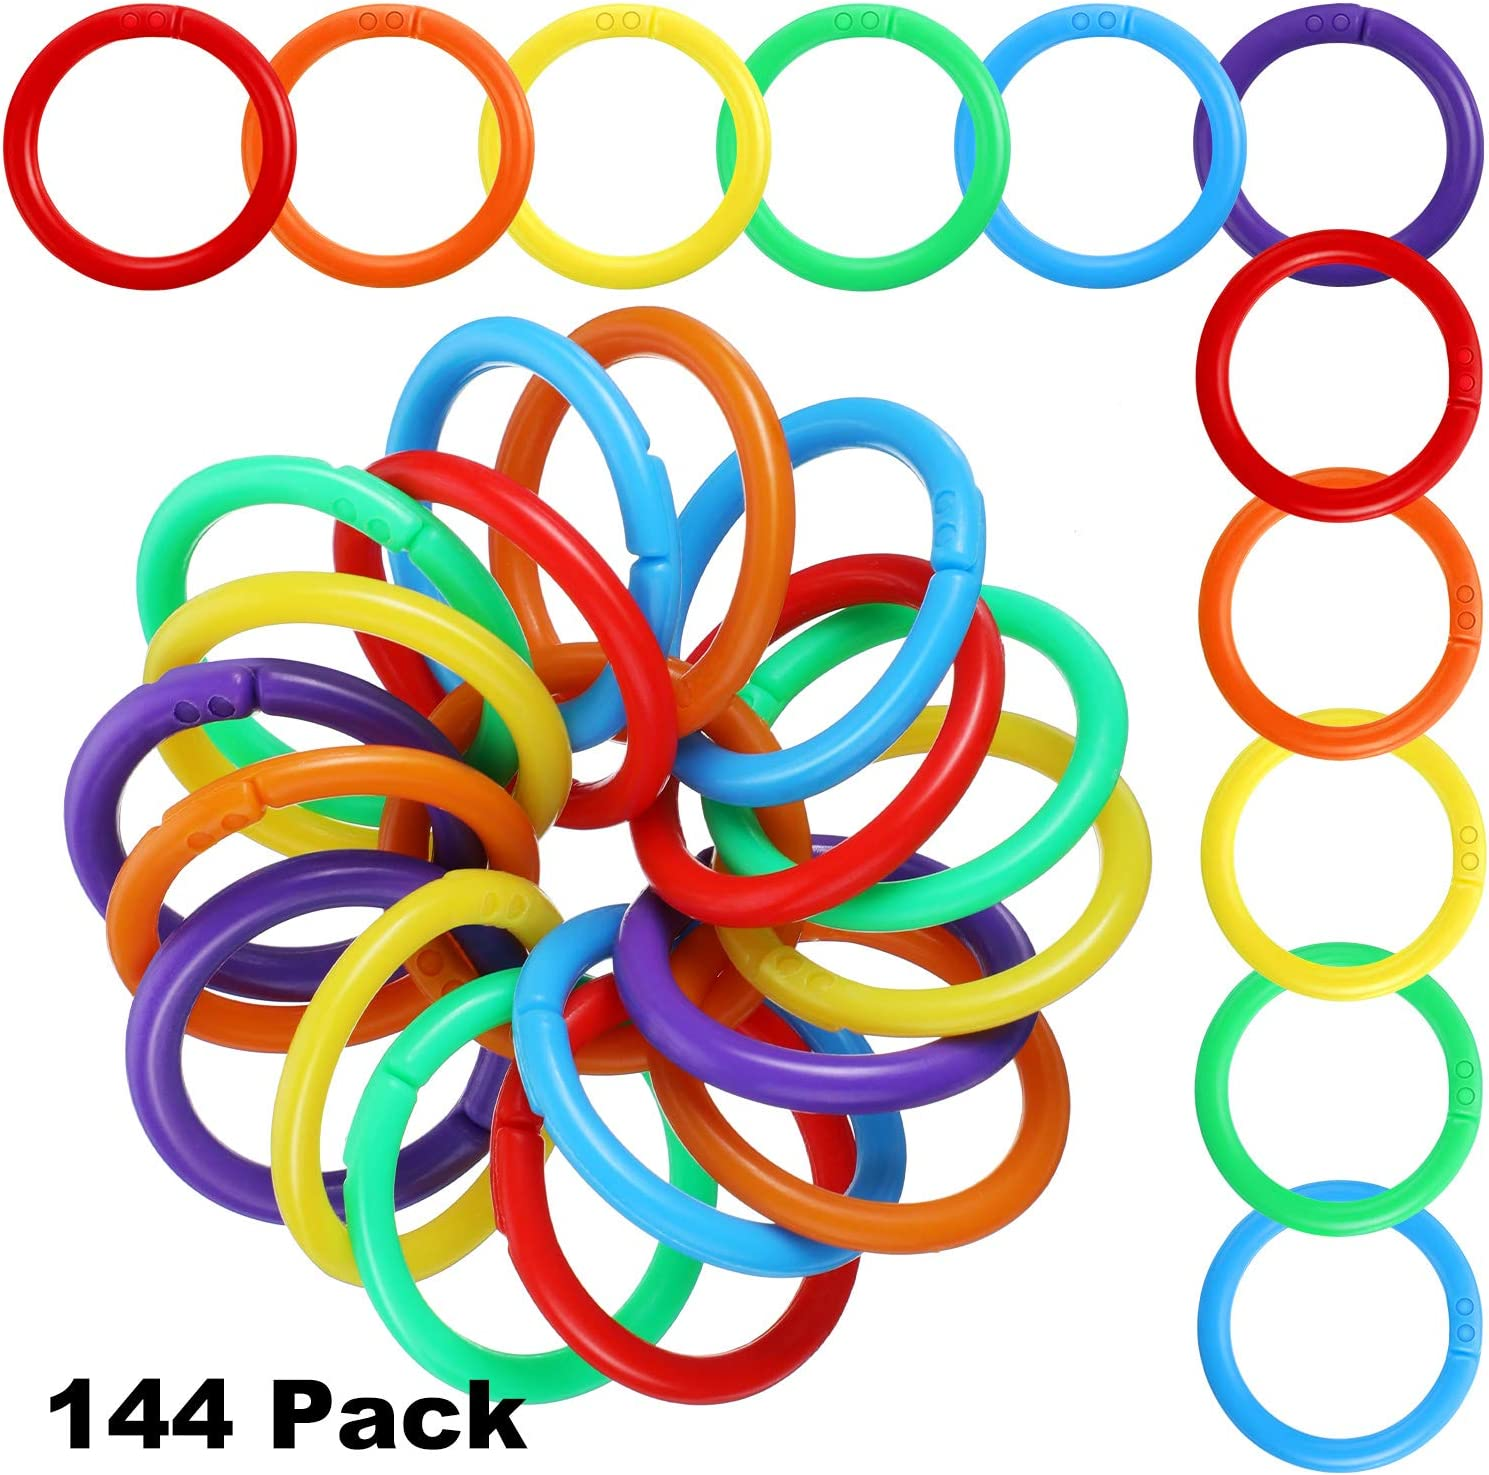 Document Stack and Swatches Organization School Home 6 Colors or Office Use 144 Pieces Plastic Loose Leaf Rings Multi-Color Binder Rings Plastic Book Rings Flexible for Cards